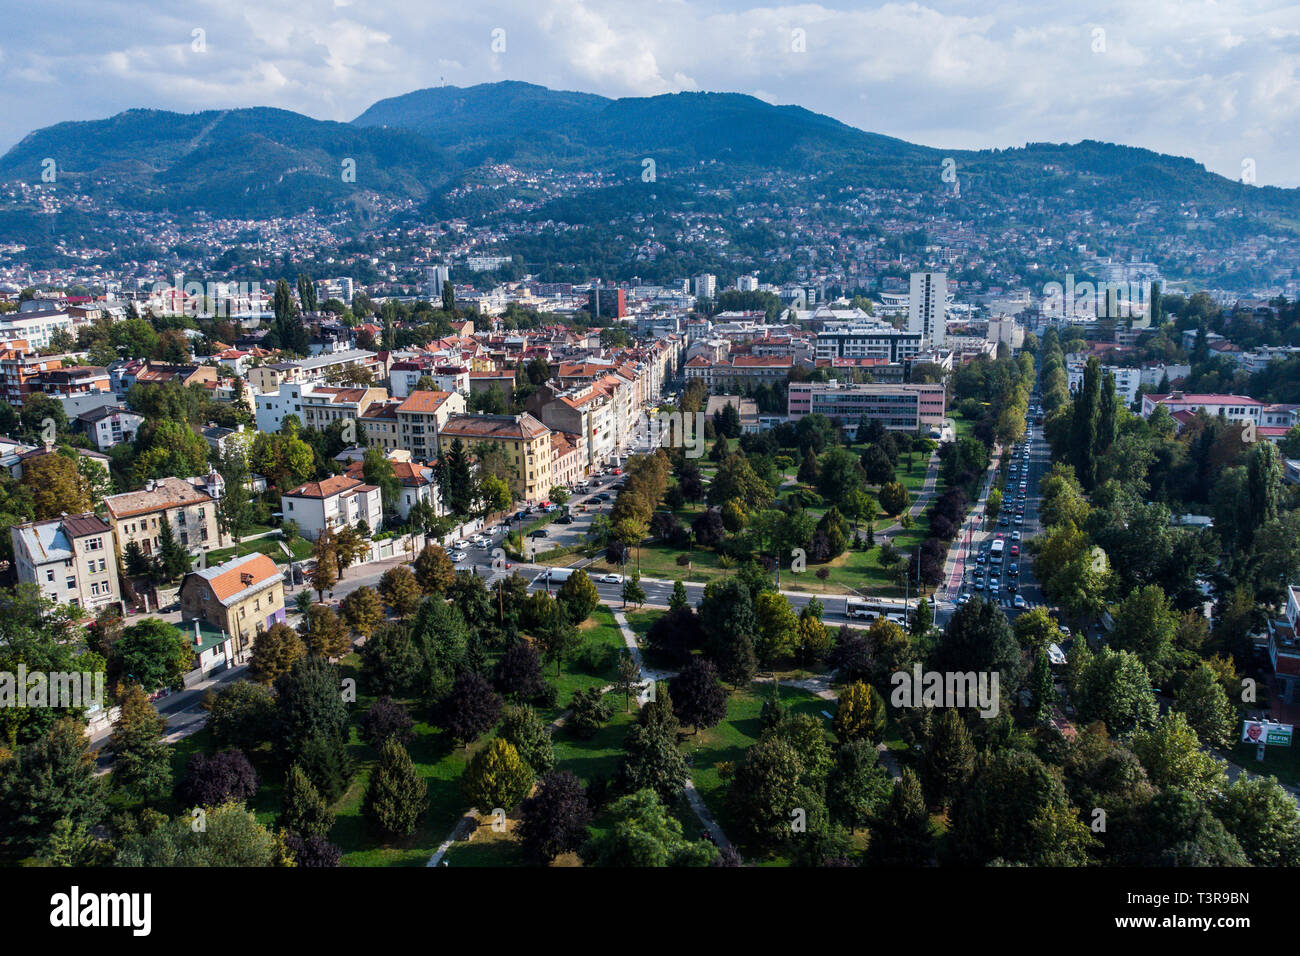 Sarajevo panorama from the north. Aerial, drone picture. - Stock Image